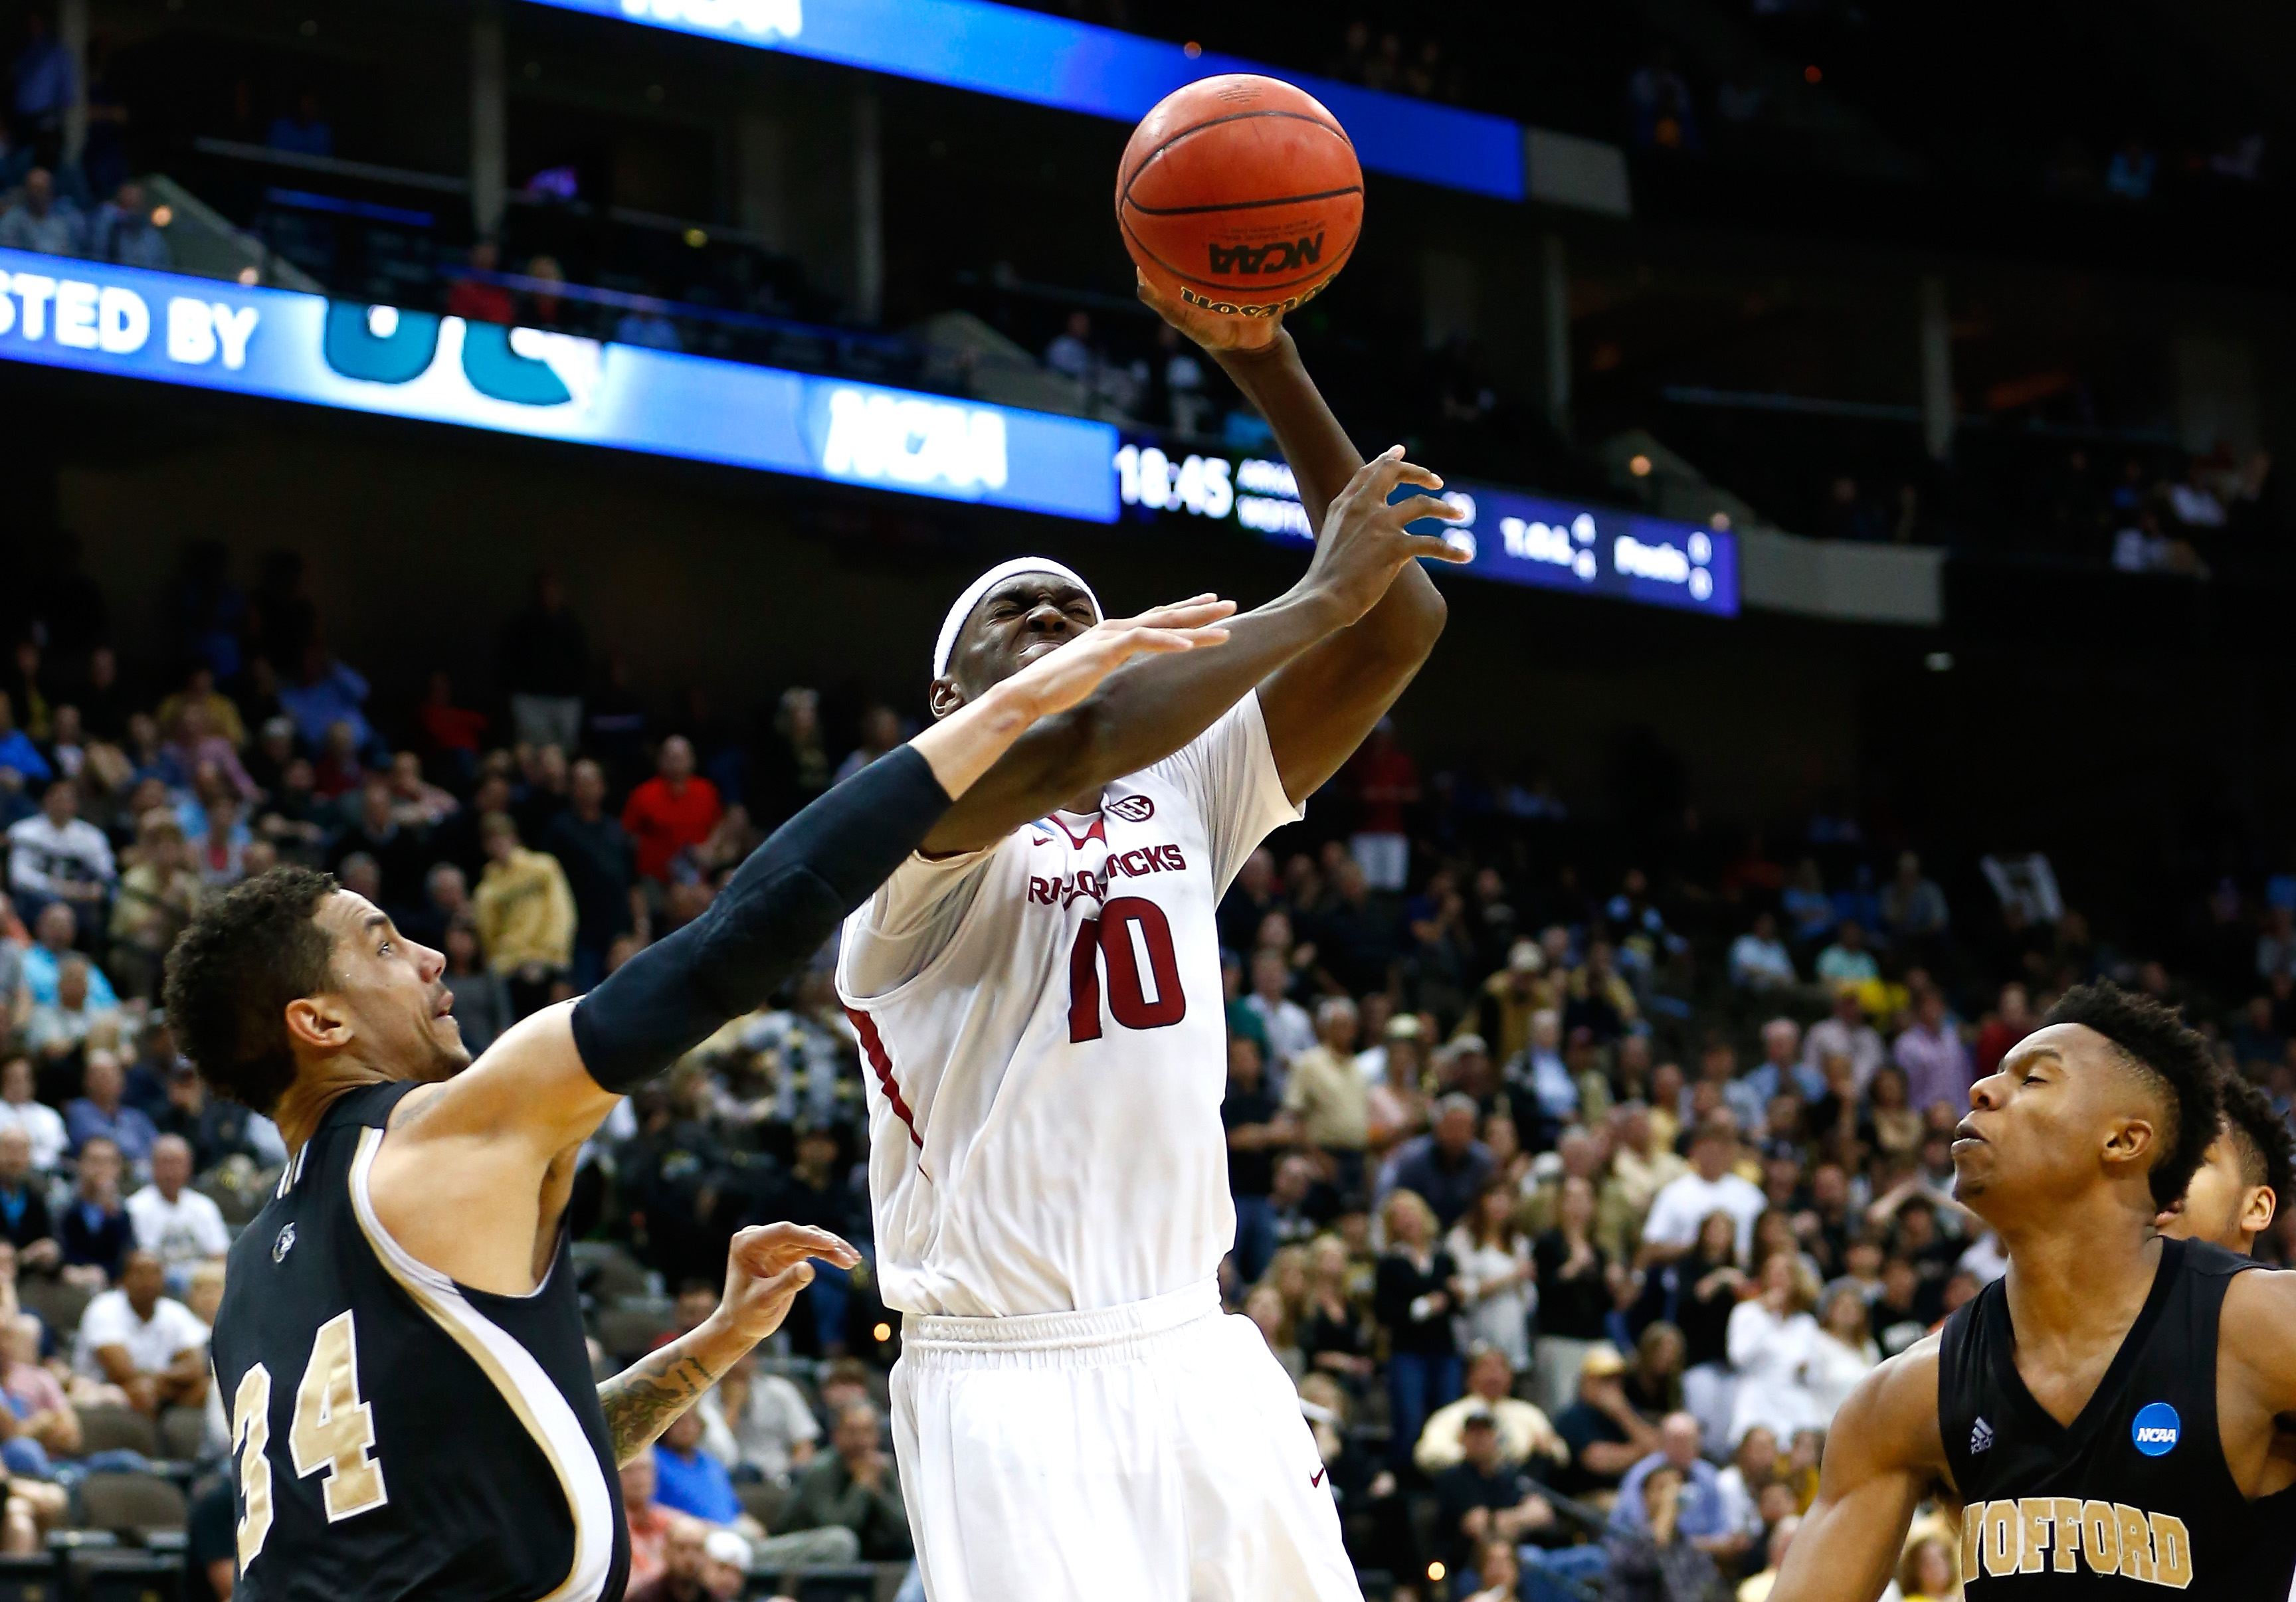 Lee Skinner #34 of the Wofford Terriers hits Bobby Portis #10 of the Arkansas Razorbacks during the second round of the 2015 NCAA Men's Basketball Tournament. (Getty)